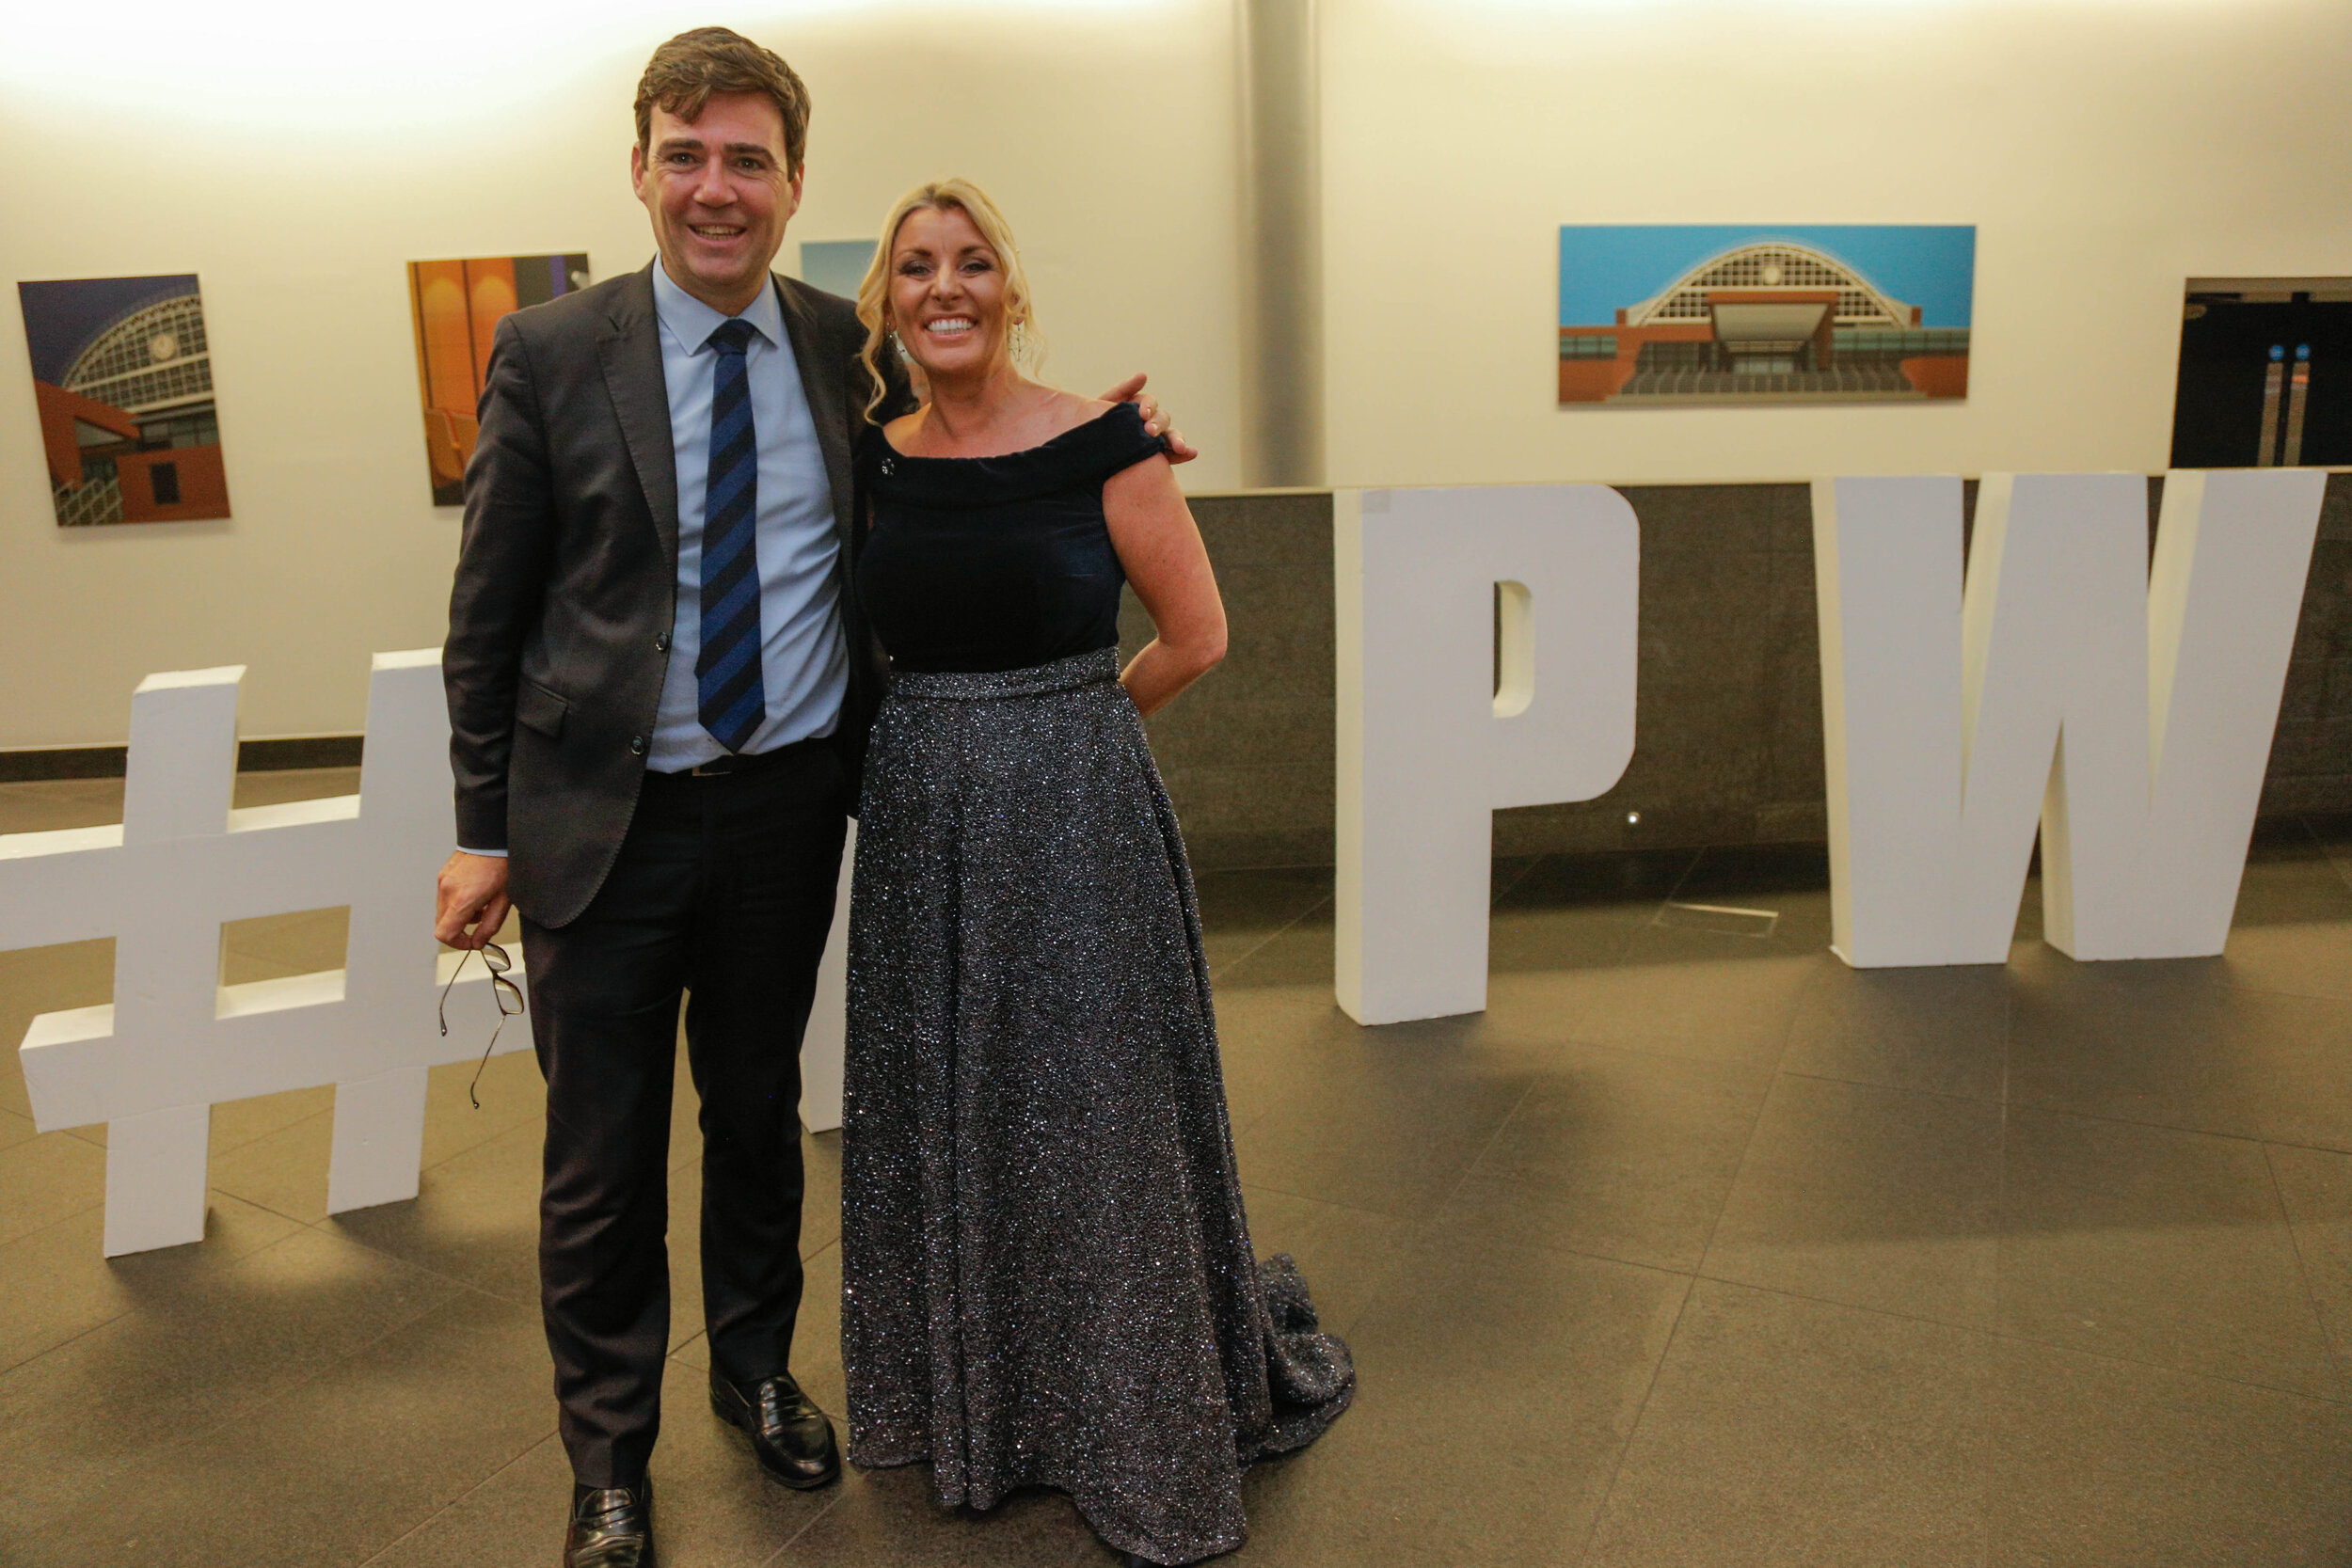 Simone Roche MBE, Founder of Northern Power Women with Andy Burnham, Mayor of Greater Manchester at the Northern Power Women Awards